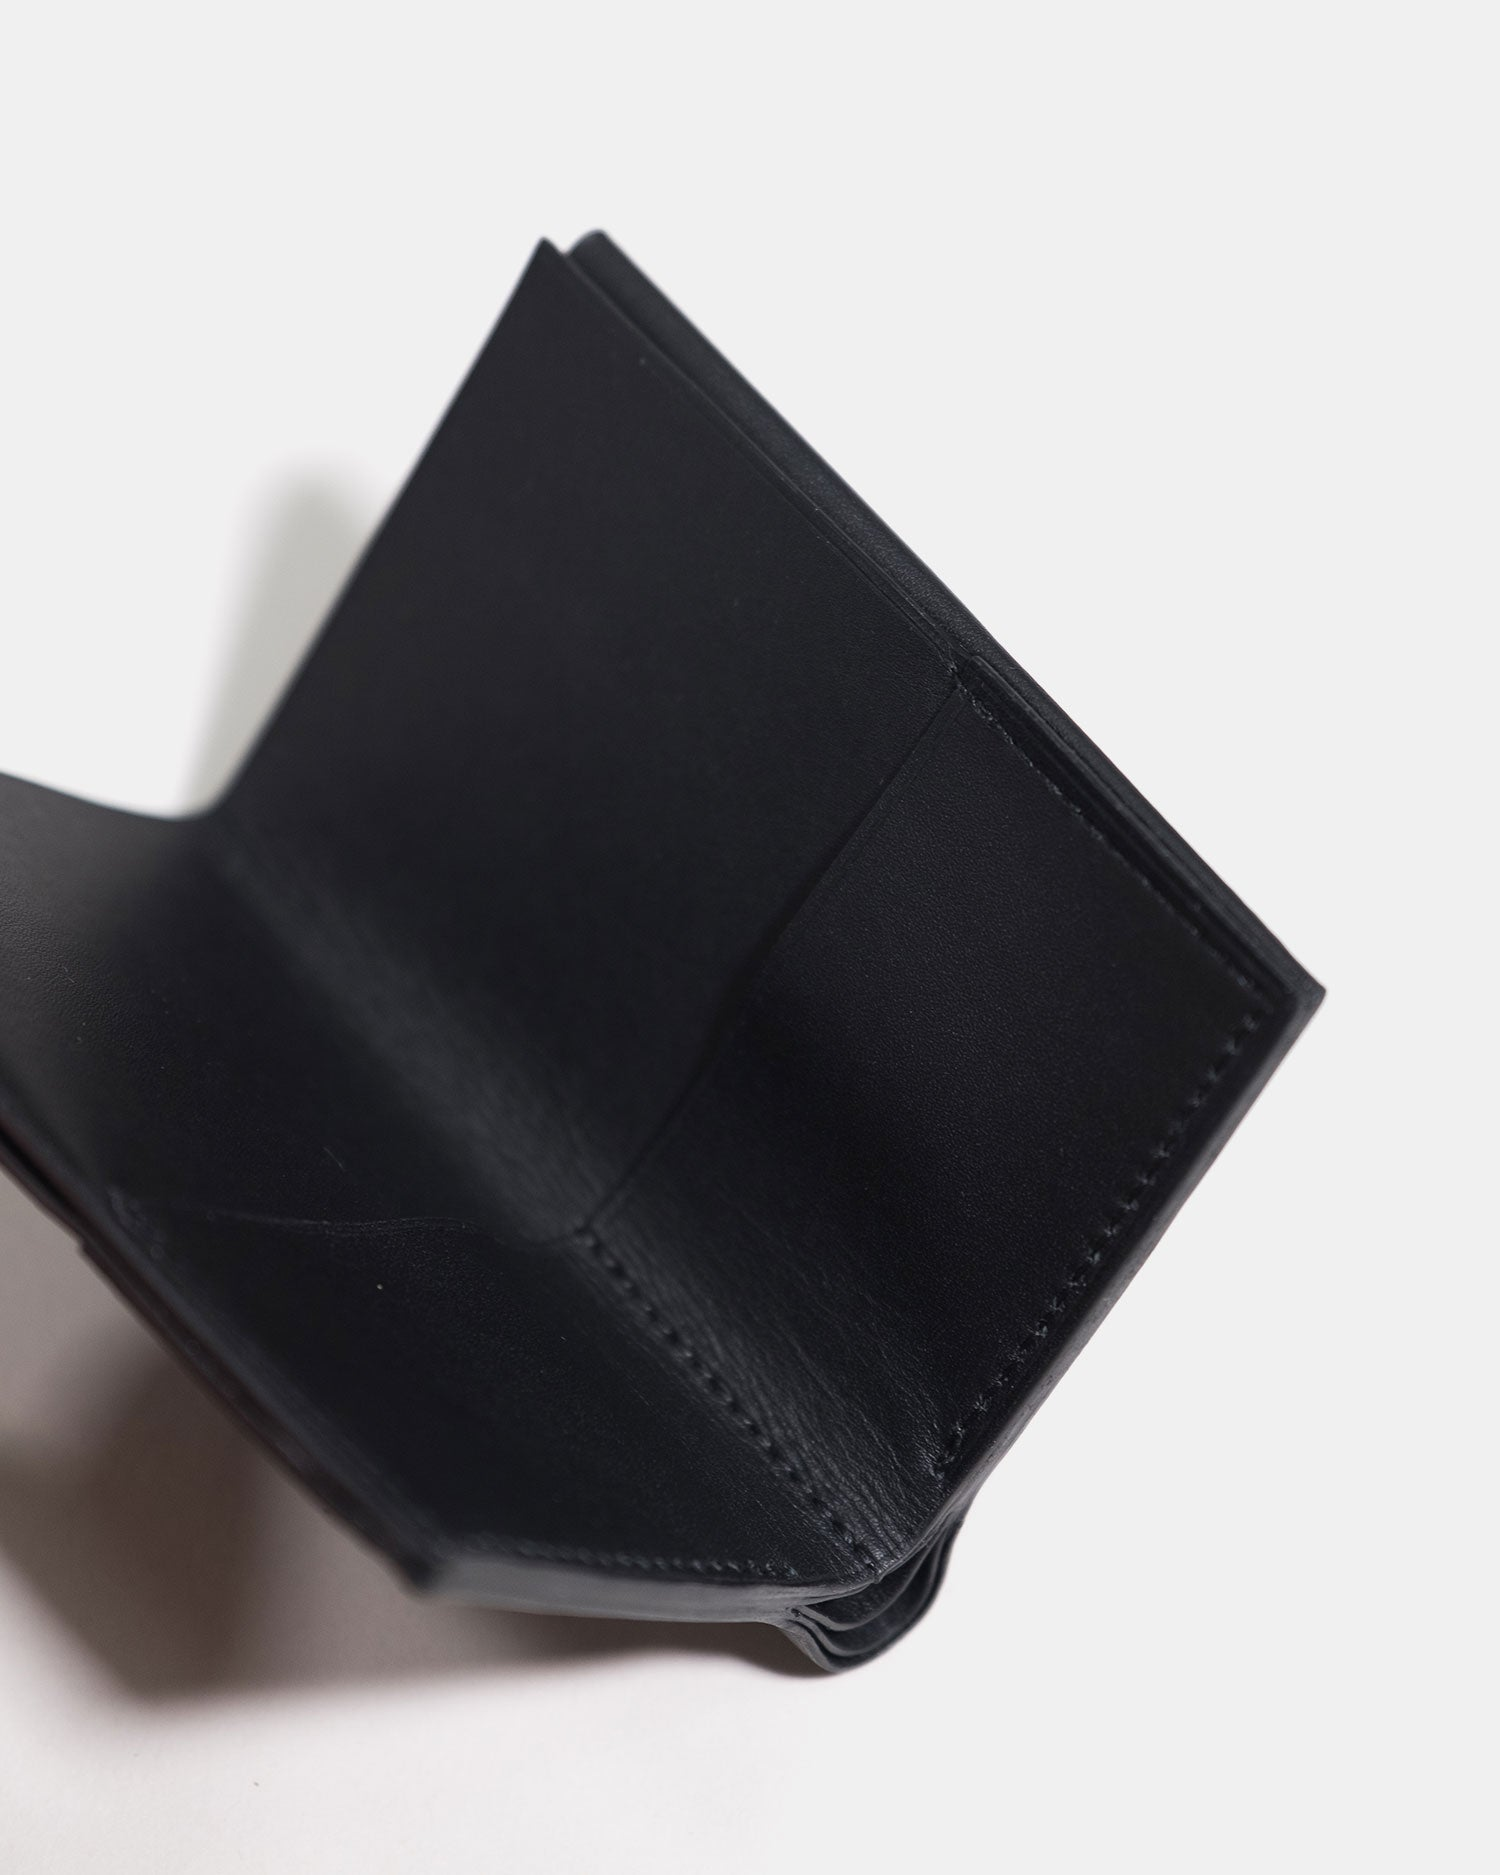 Études Leather Card Holder